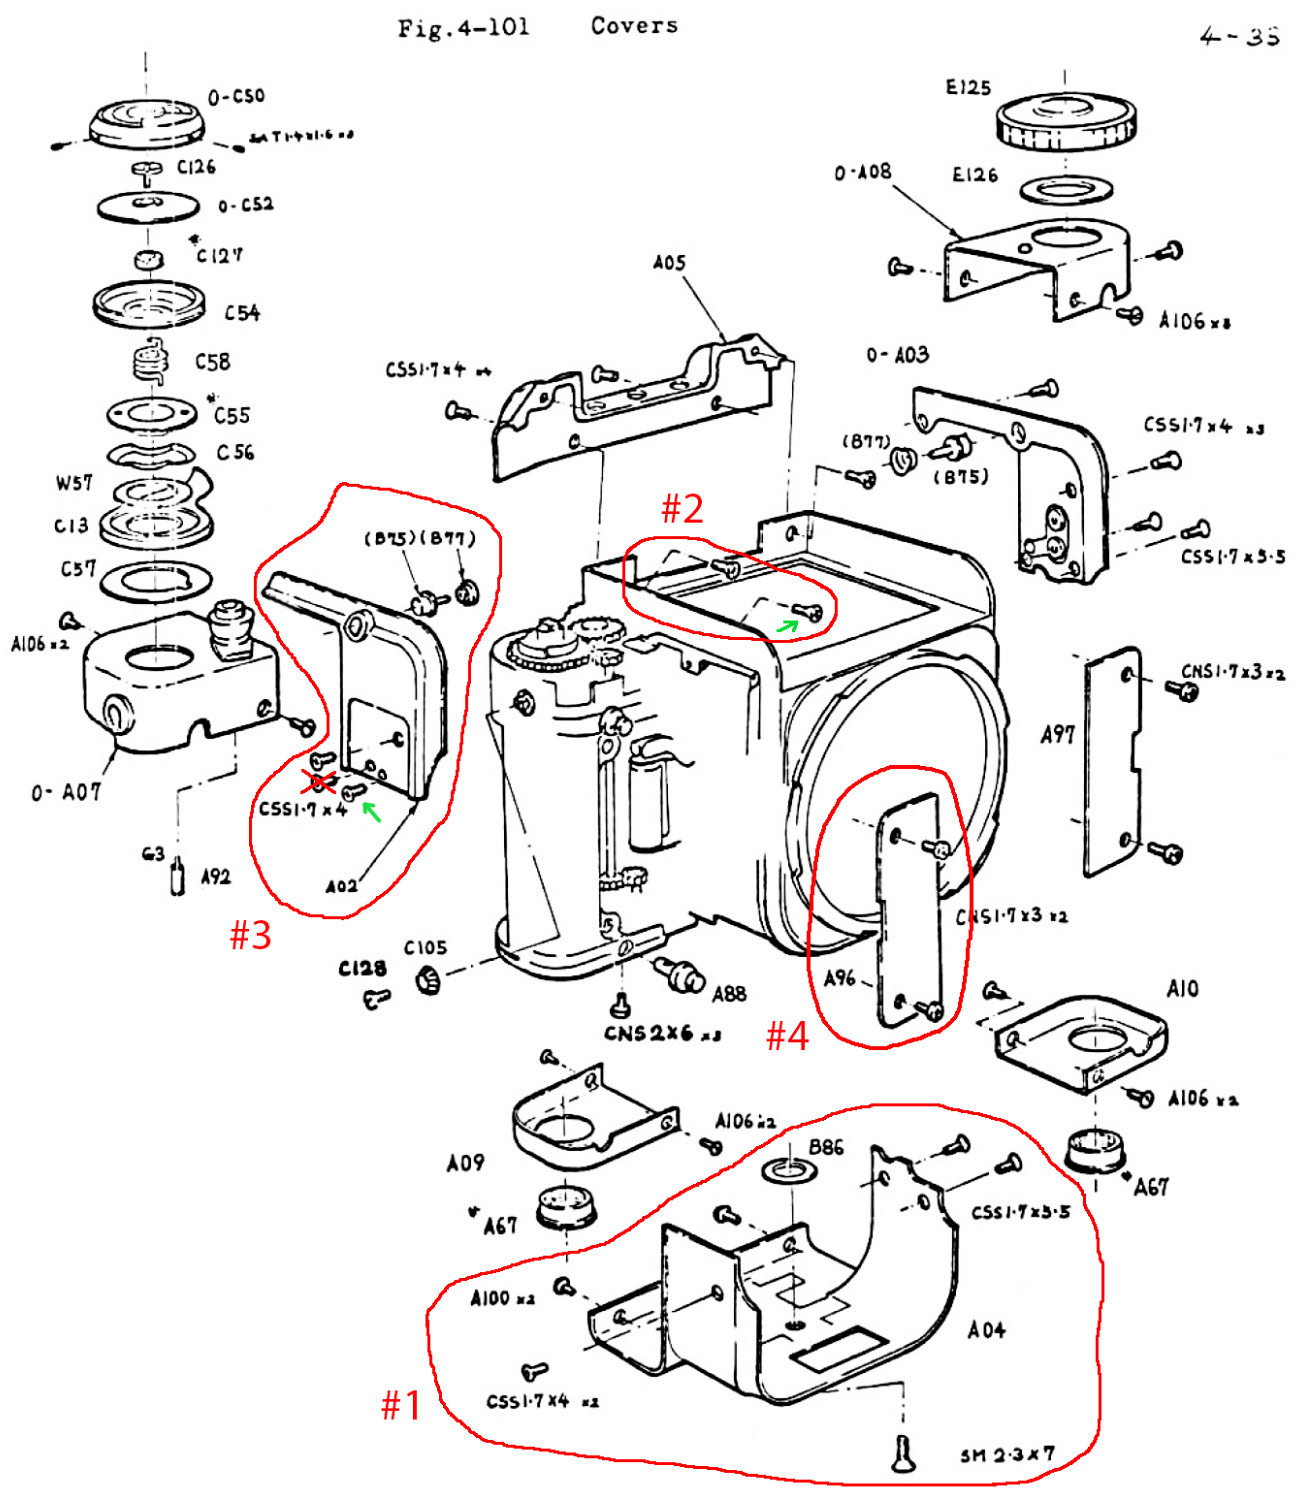 Geo Prizm Engine Diagram on 1996 ford contour repair manual